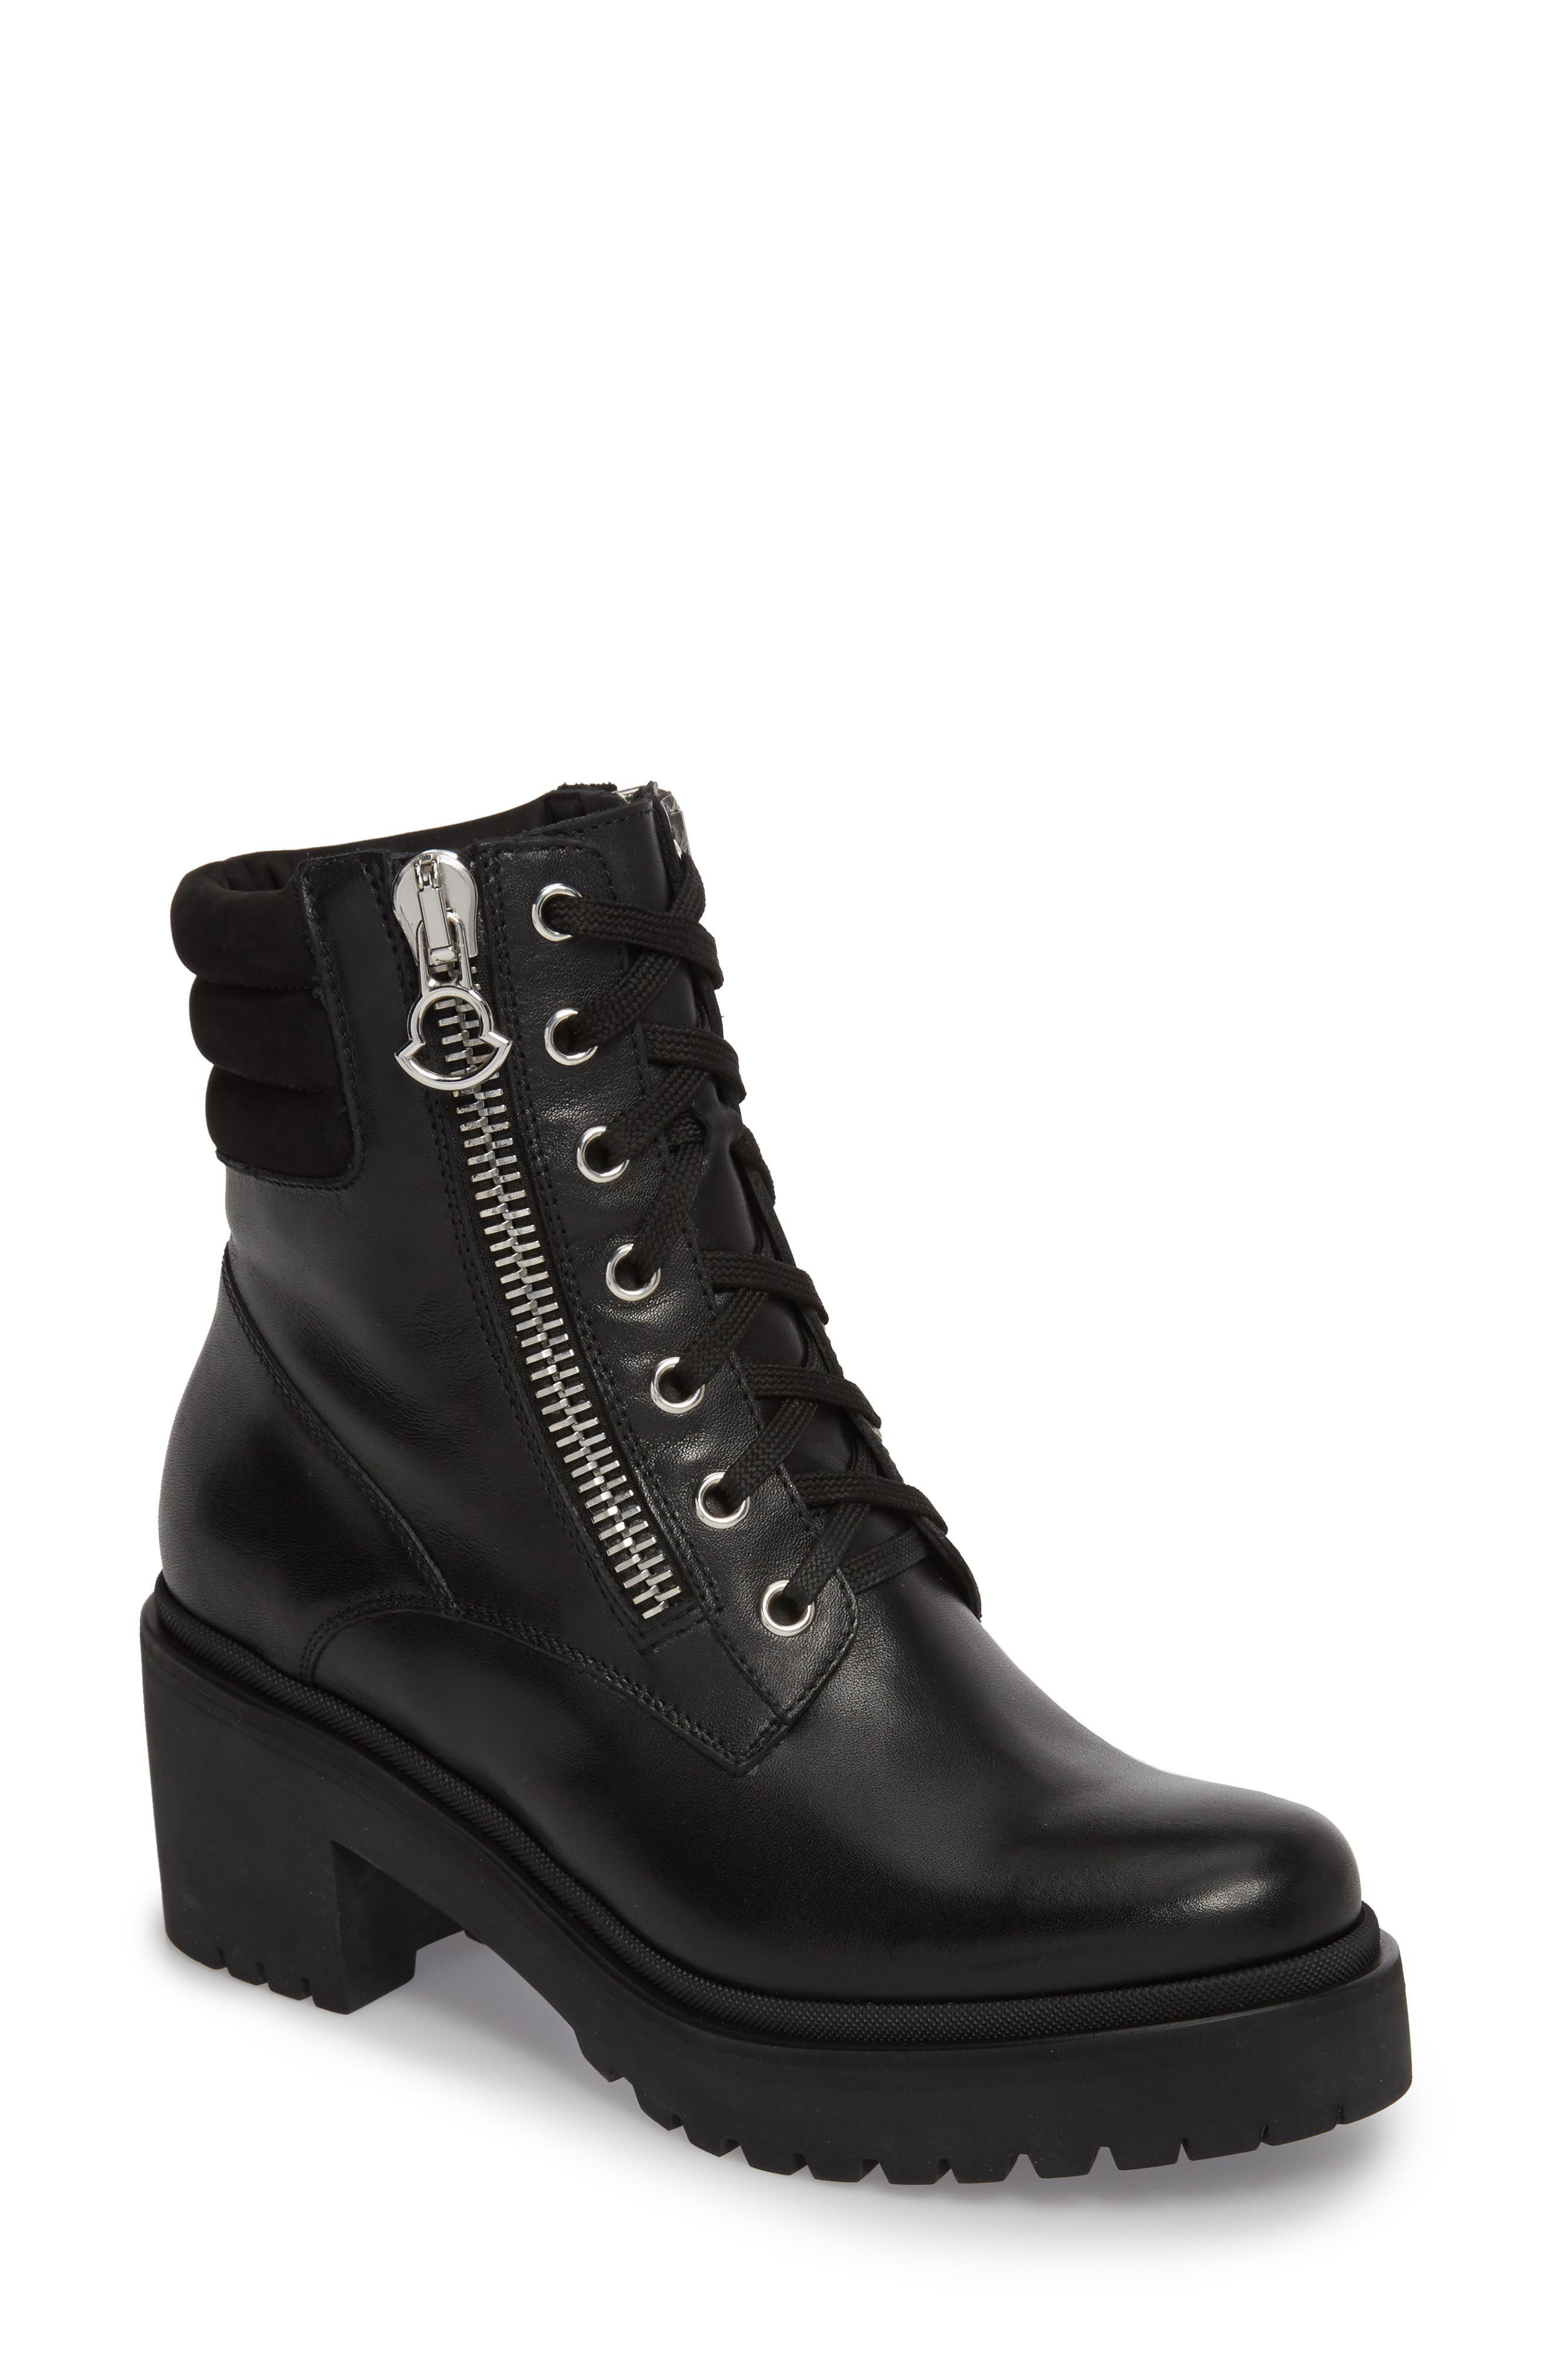 Viviane Combat Boot by Moncler